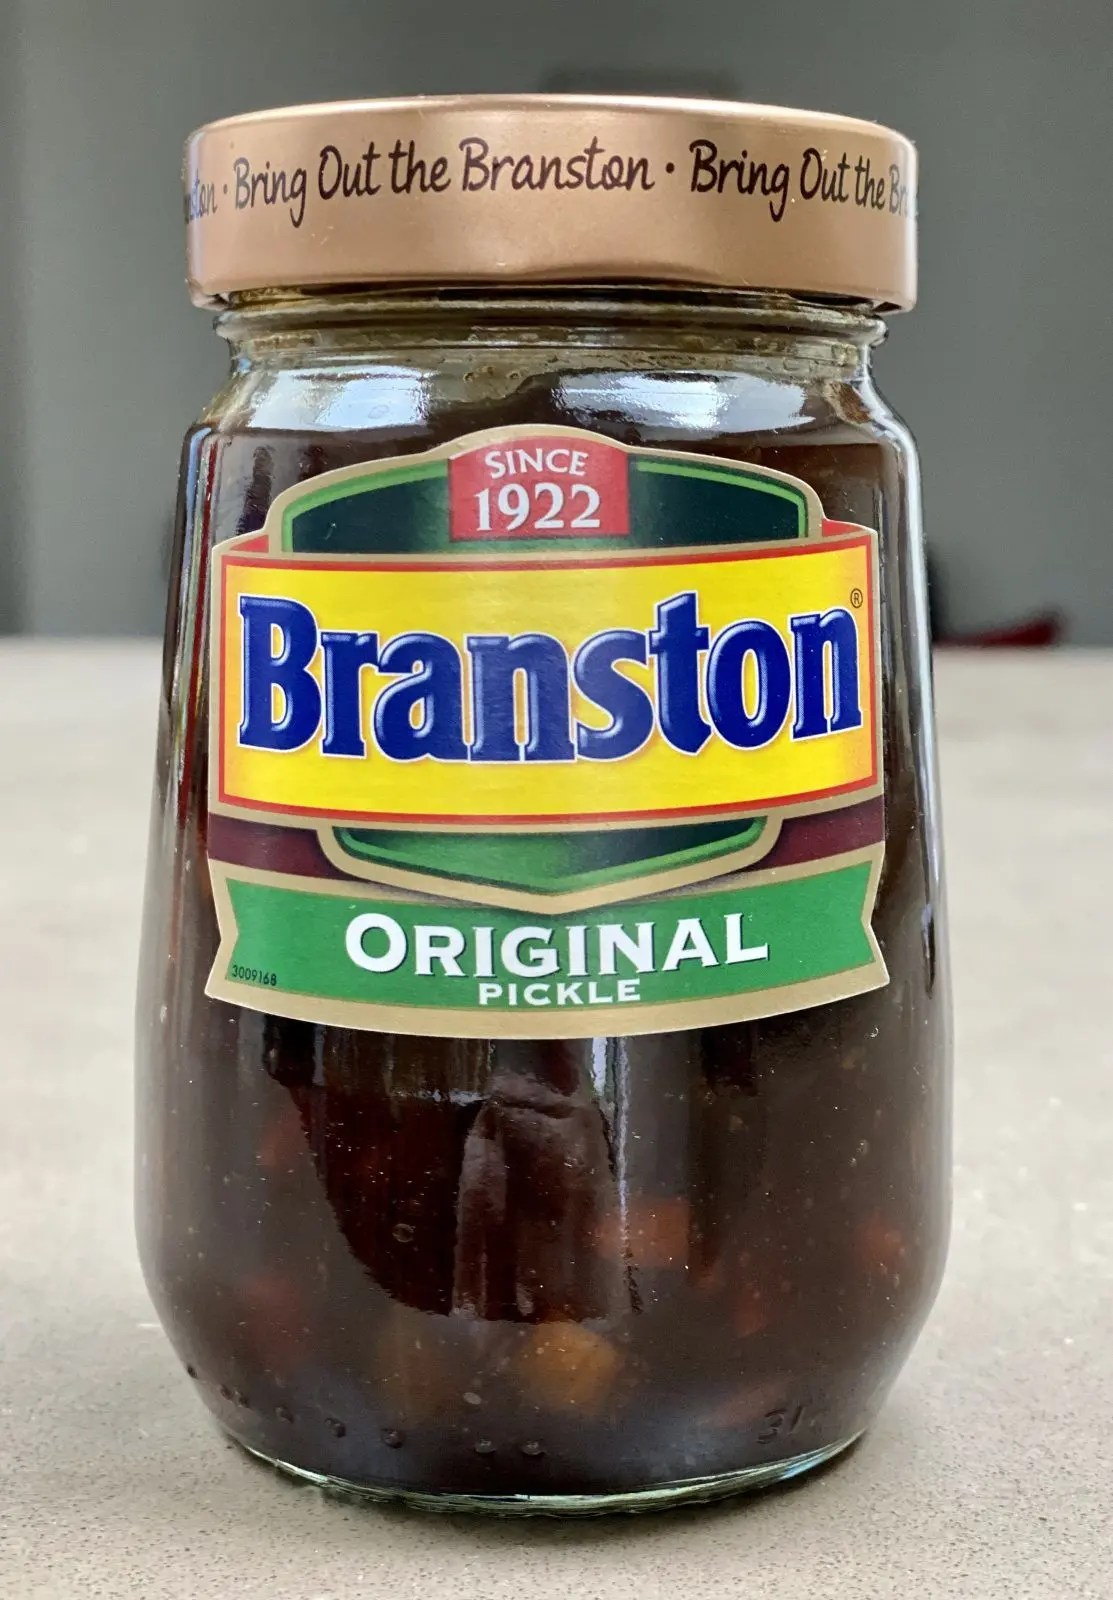 Branston pickle is gluten free